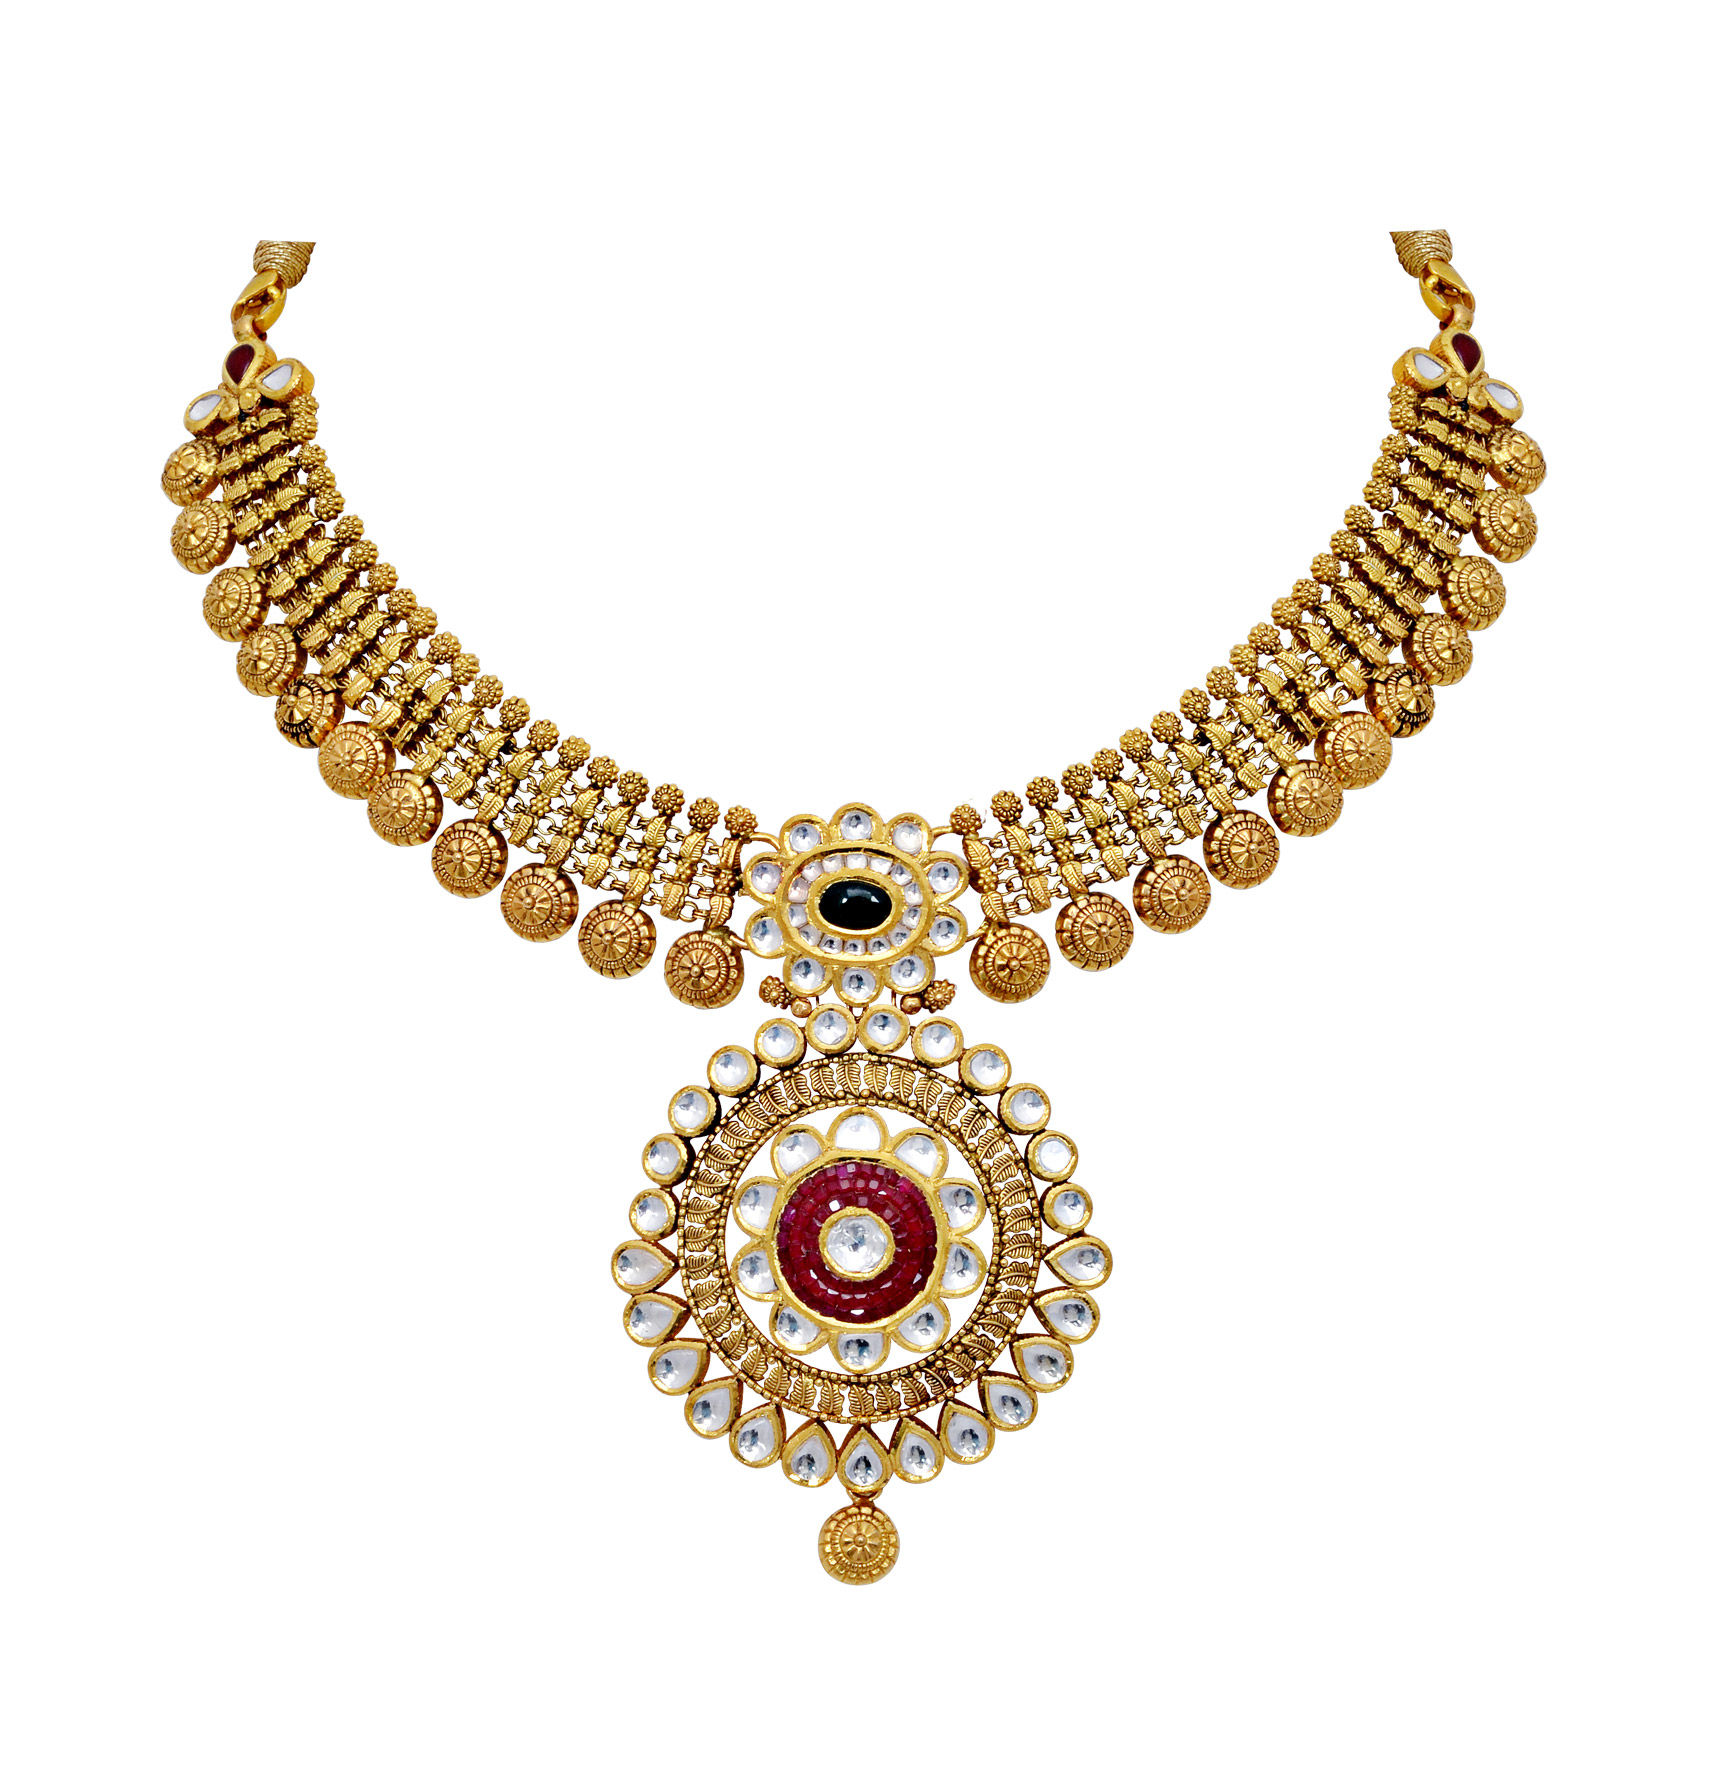 Gold Necklaces | GRT Jewellers – At Singapore from 3rd July